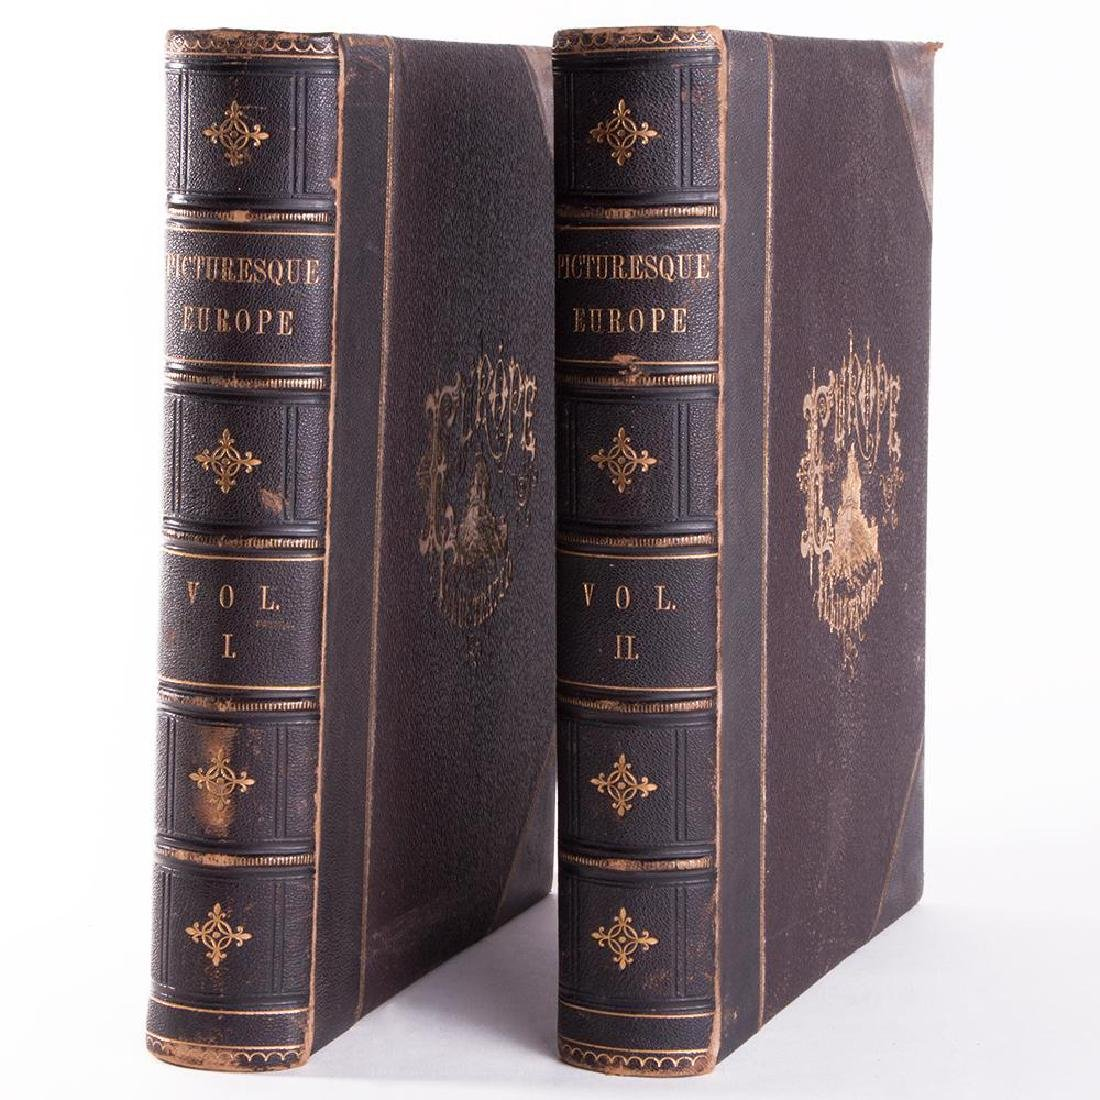 Two Volumes, Picturesque Europe